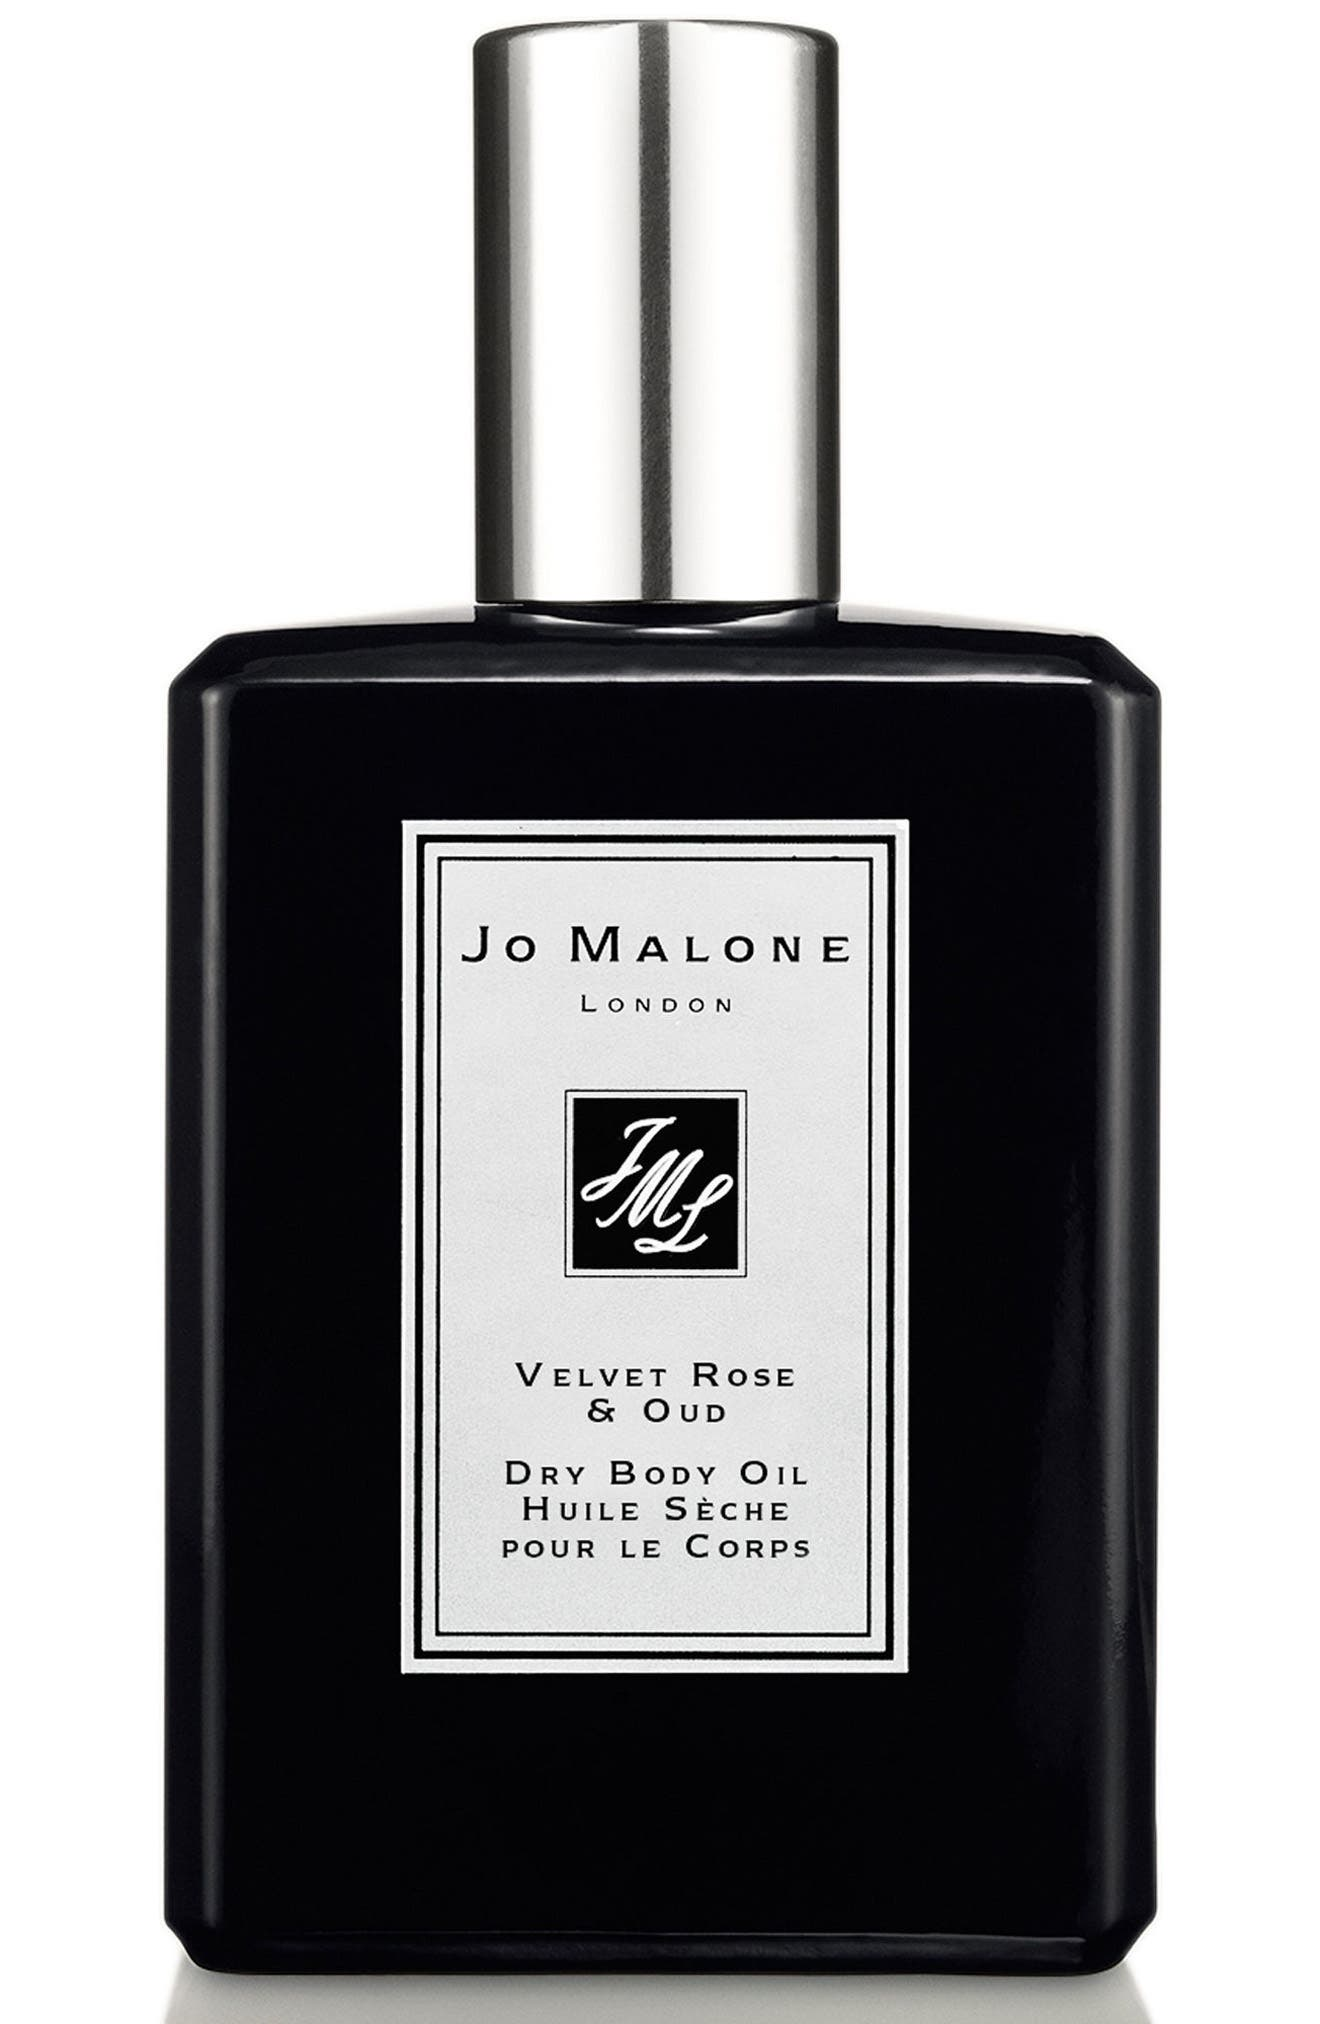 JO MALONE LONDON™ 'Velvet Rose & Oud' Dry